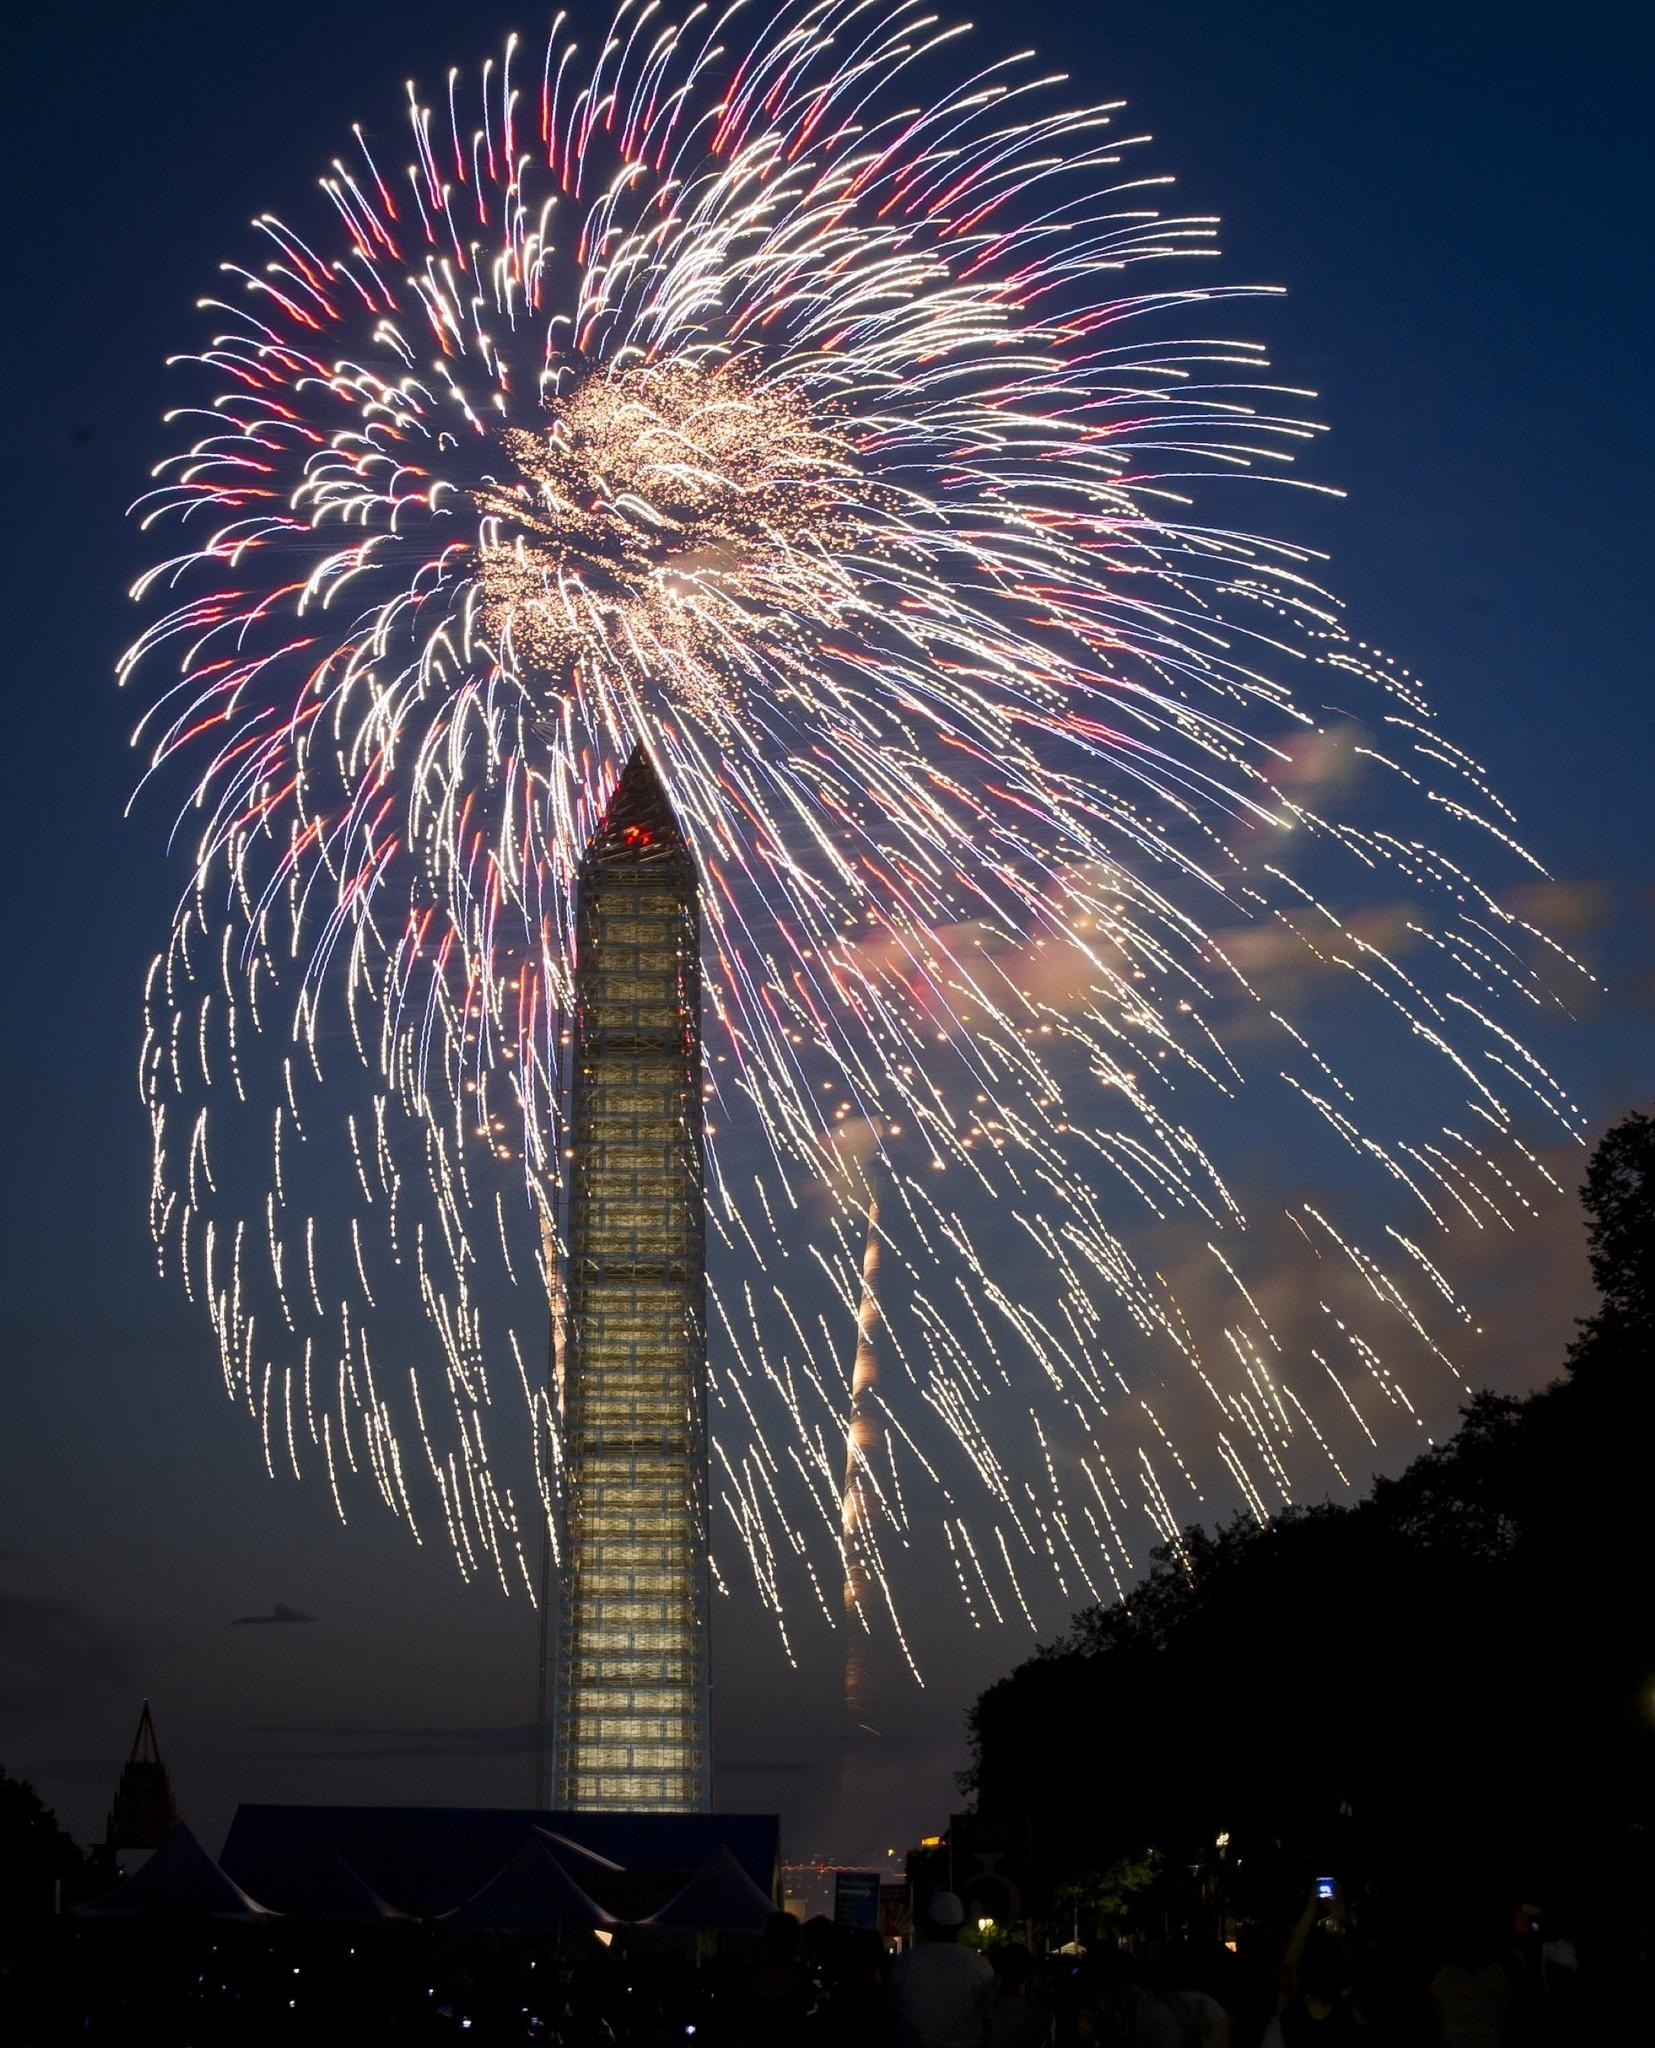 Fourth of July fireworks are seen over the Washington Monument in Washington, D.C.